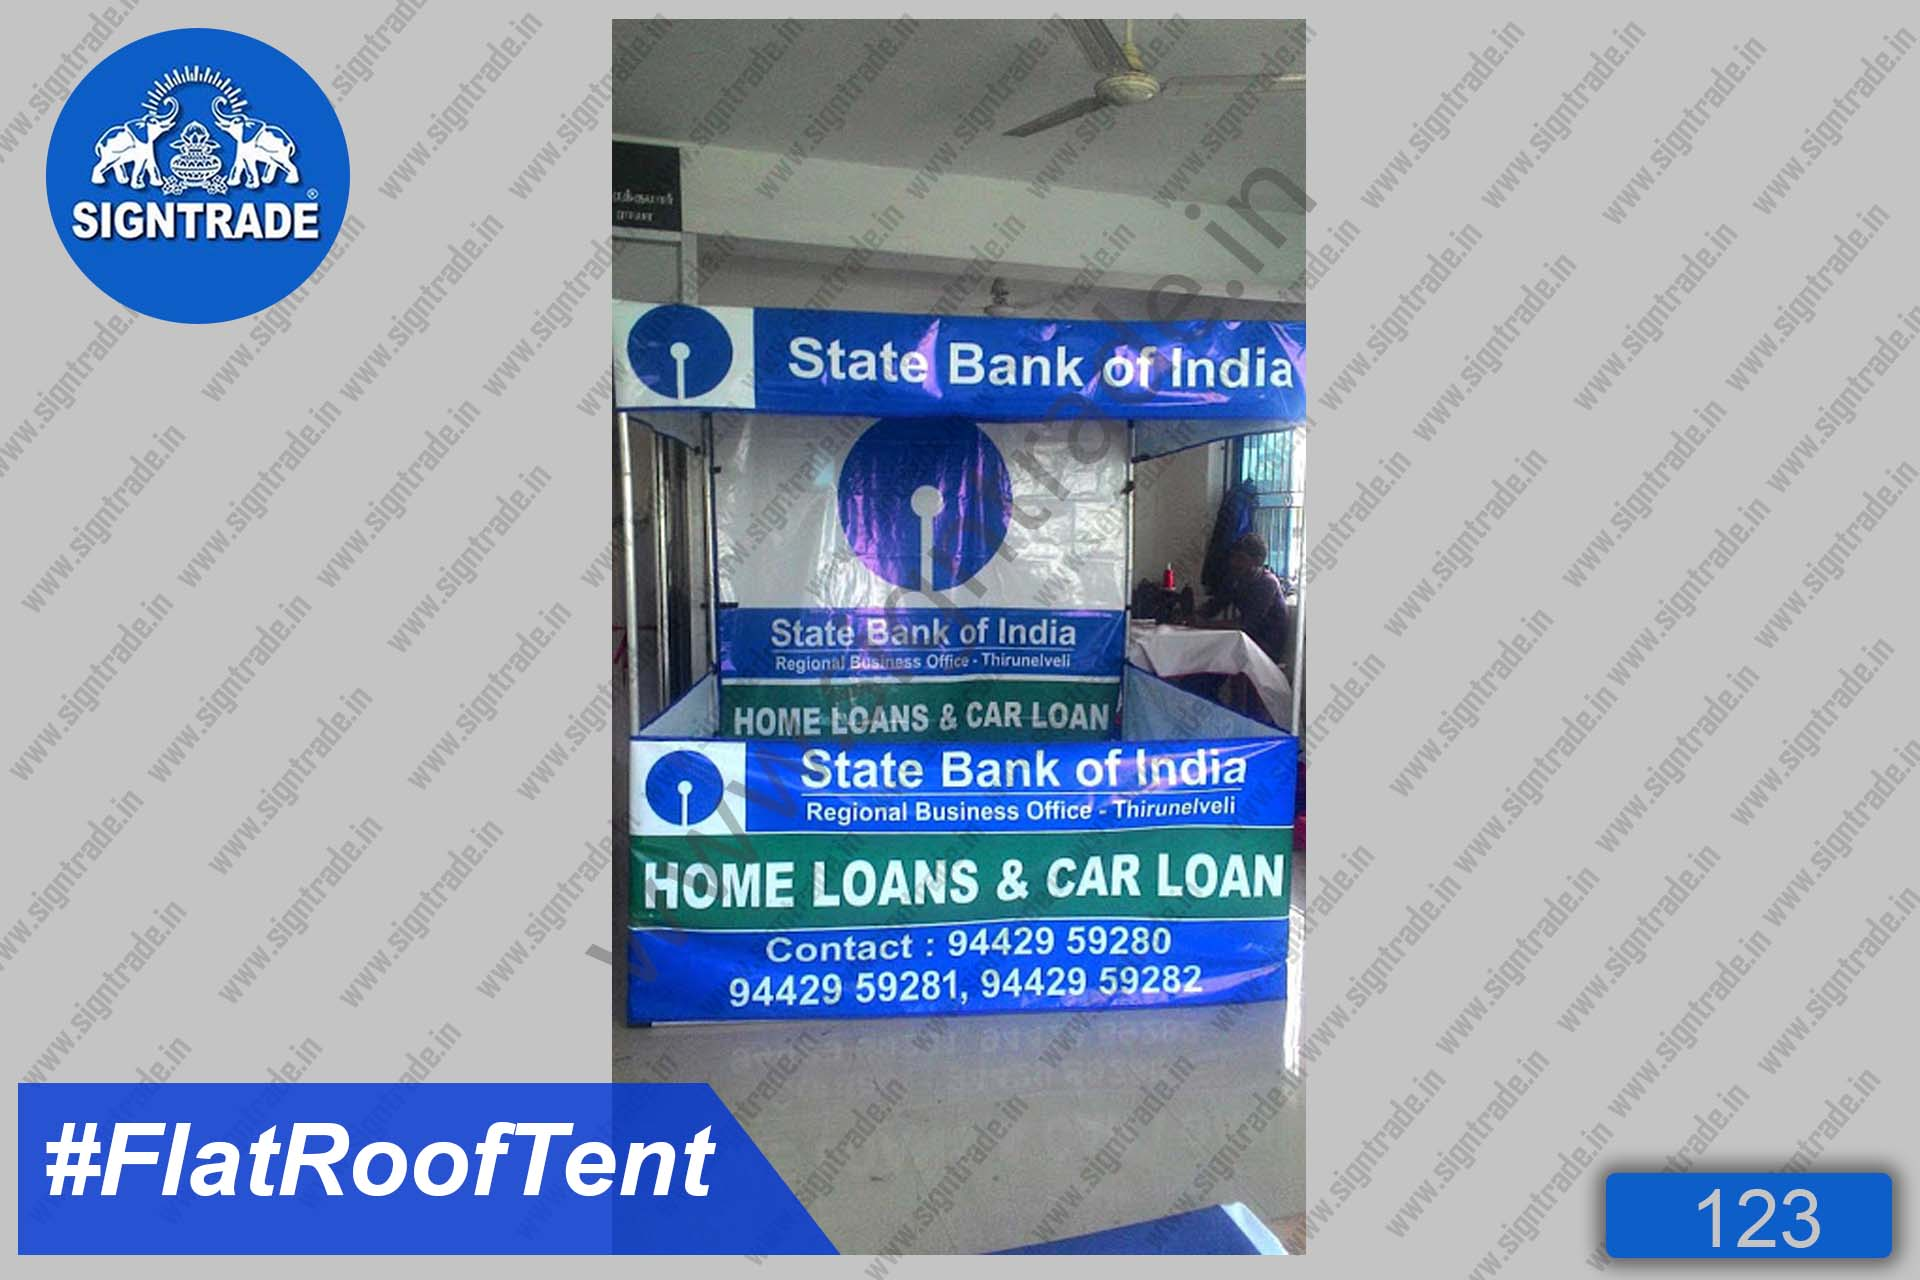 State Bank of India (Home & Car Loans) - Canopy Tent, Flat Roof Tent